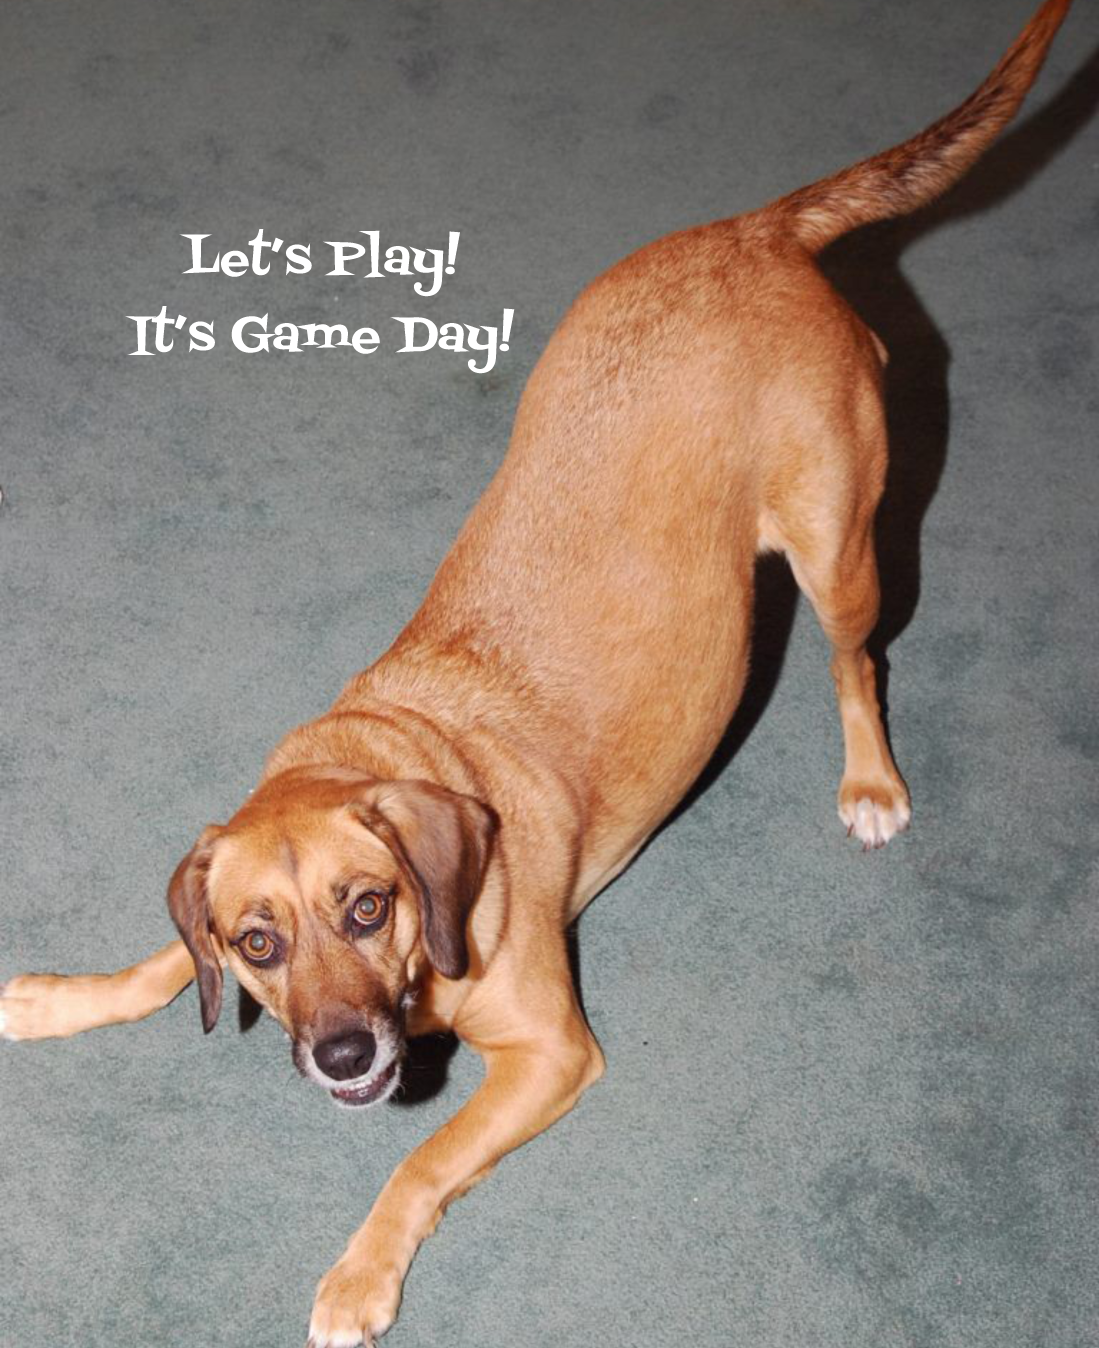 Teaching Your Dog Calm Greeting On Leash, In A Game